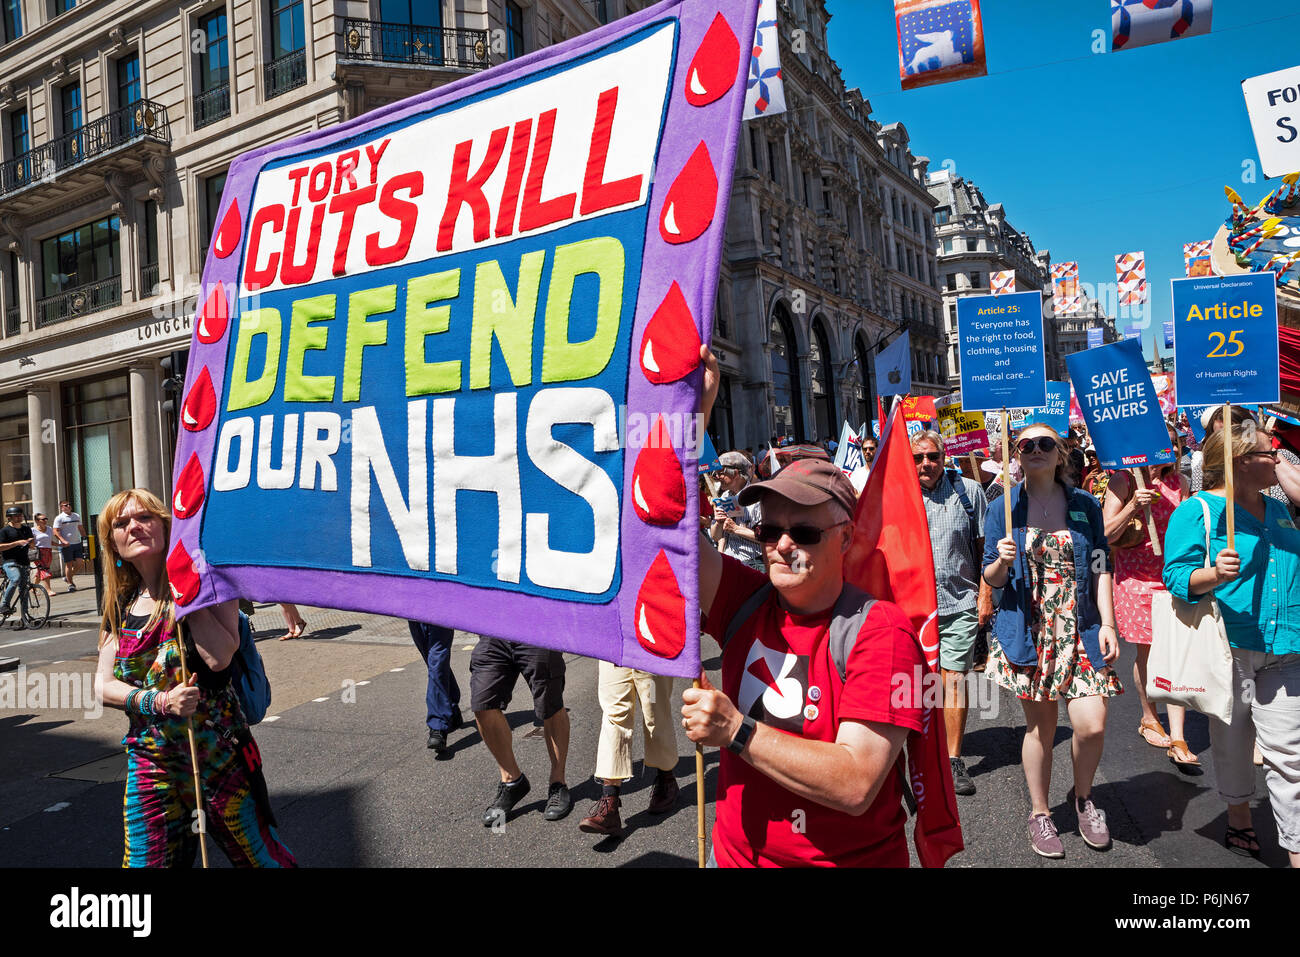 London, UK. 30th June 2018. NHS 70 march on Downing Street. Tens of thousands gathered by the BBC at Portland Place and marched through central London to mark the 70th anniversary of the National Health Service. They were campaigning for an end to cuts, privatisation, and for credible funding. The march and rally was organised by the People's Assembly Against Austerity, Health Campaigns Together, TUC and health service trade unions. Credit: Stephen Bell/Alamy Live News. - Stock Image